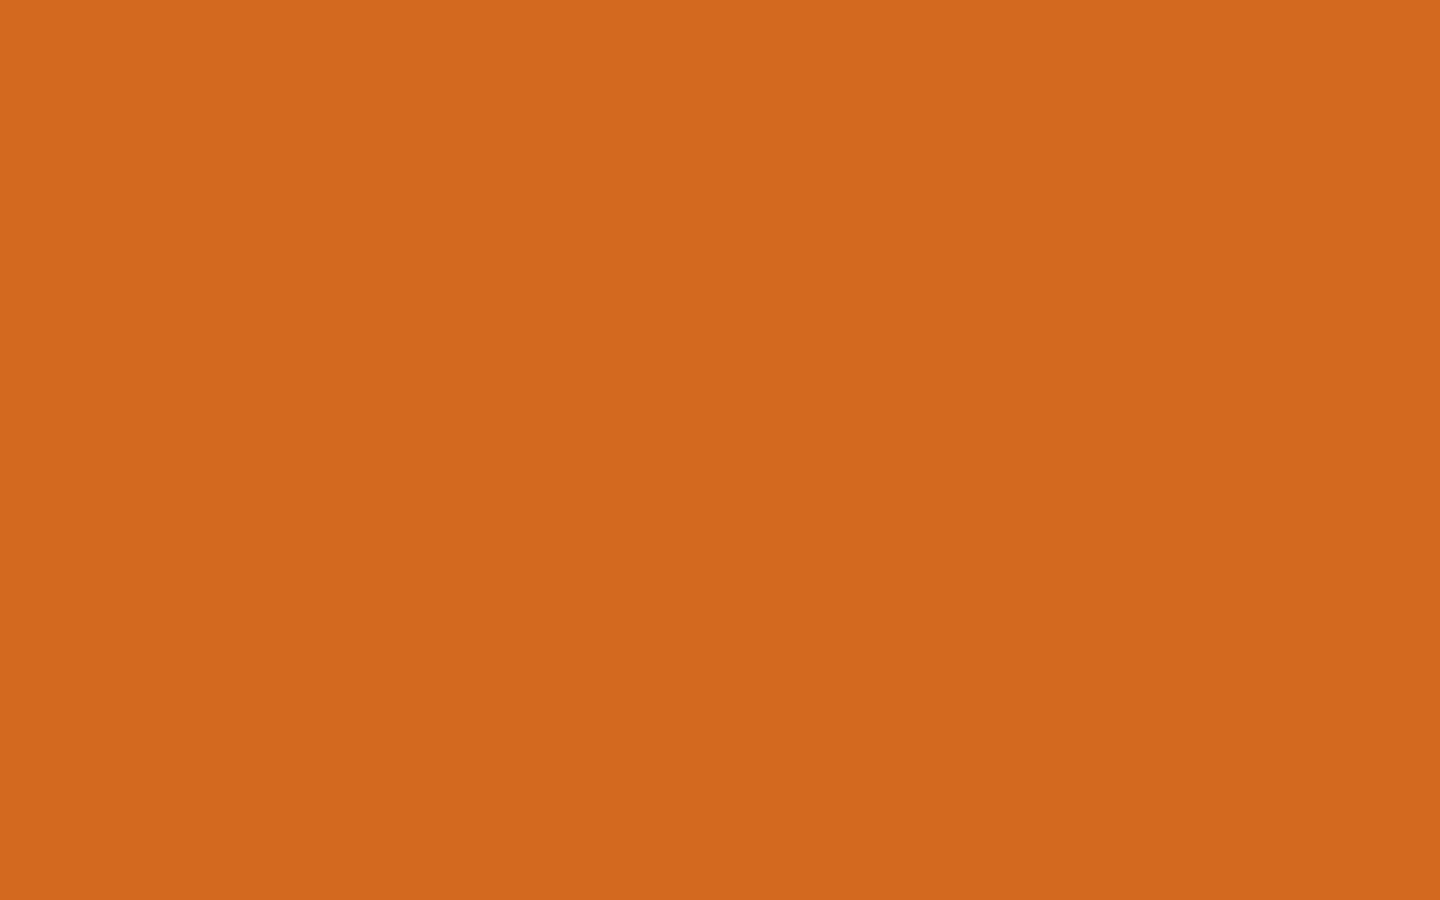 1440x900 Cinnamon Solid Color Background